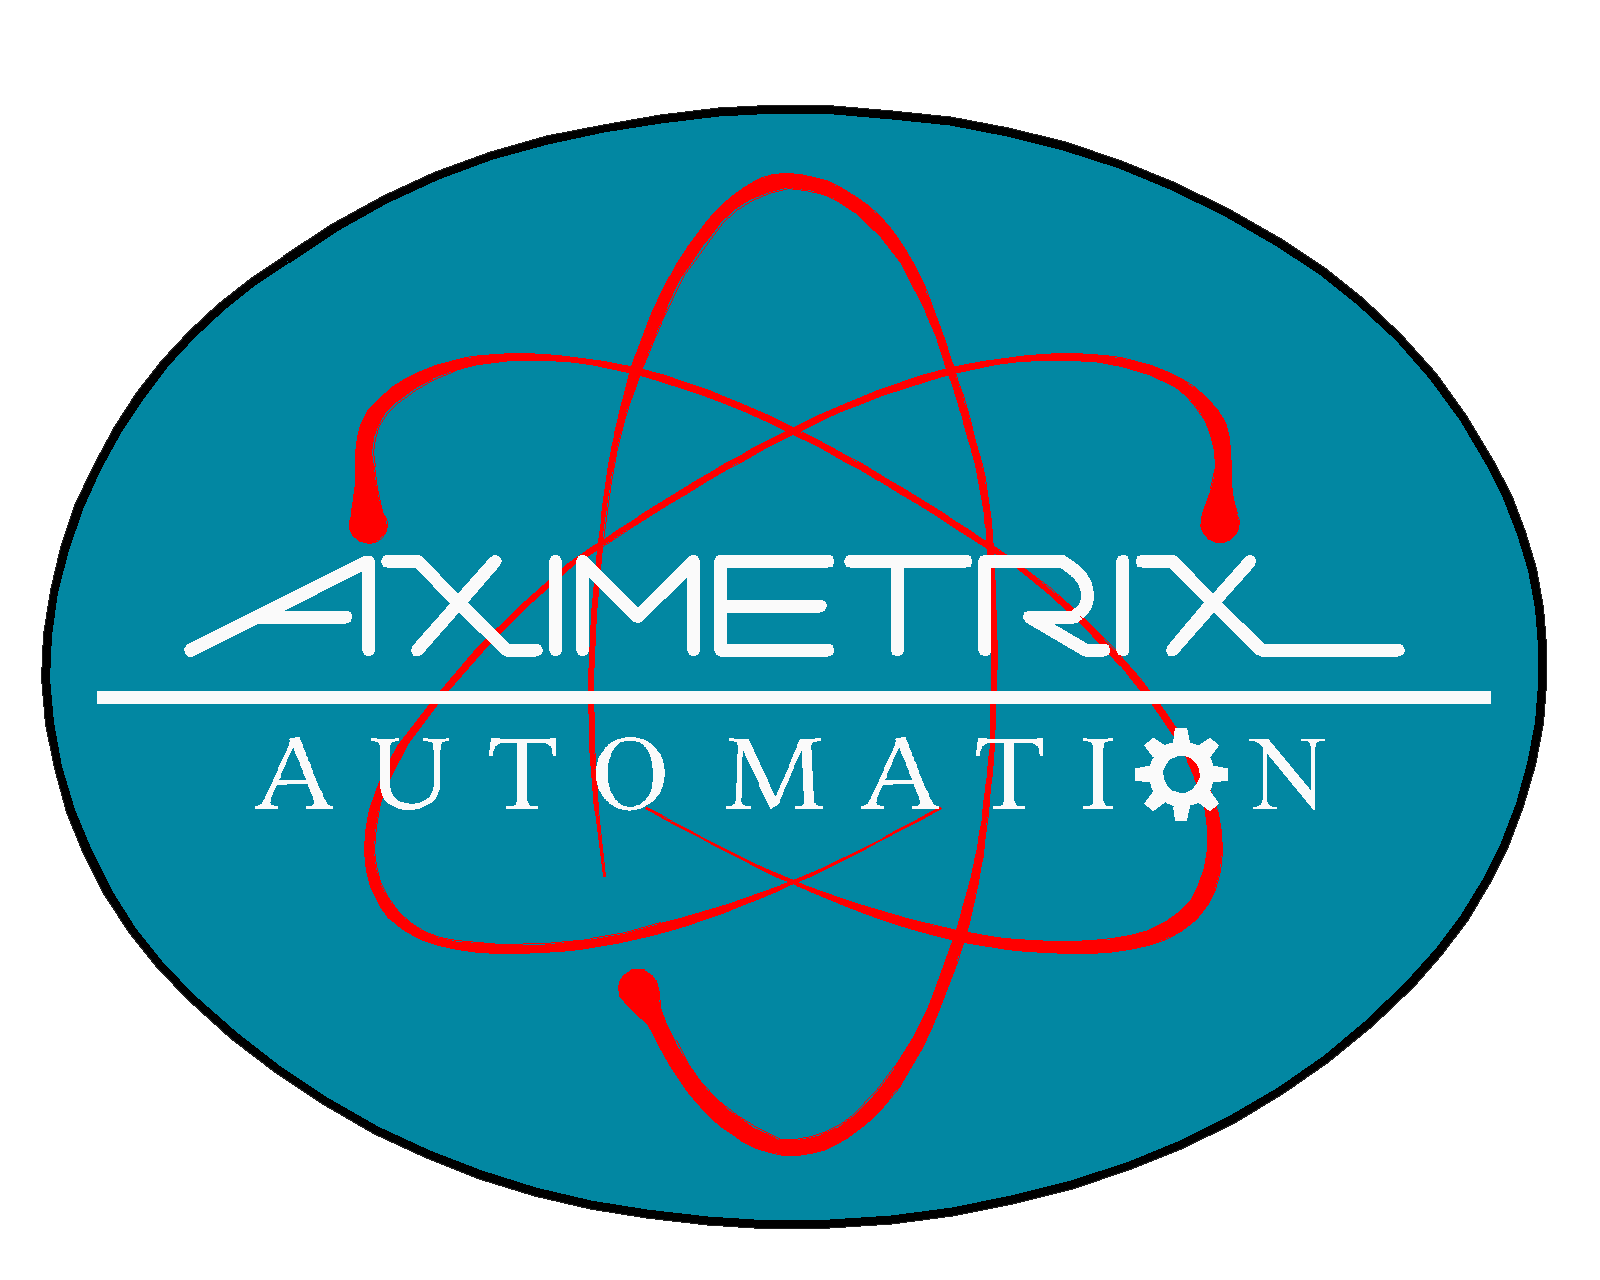 Aximetrix Automation Inc. - Aximetrix Automation Inc. is the official sponsor of the Avengers. AXIMETRIX is a small, trusted and dynamic company. With our partners, we aim to develop multi-functional and high performance turnkey equipment in robotic automation. Exploring all mecatronic domains, we are here to meet your needs.Your project is unique? Our approach is personalized and original. Together we will build the solution that's right for you.